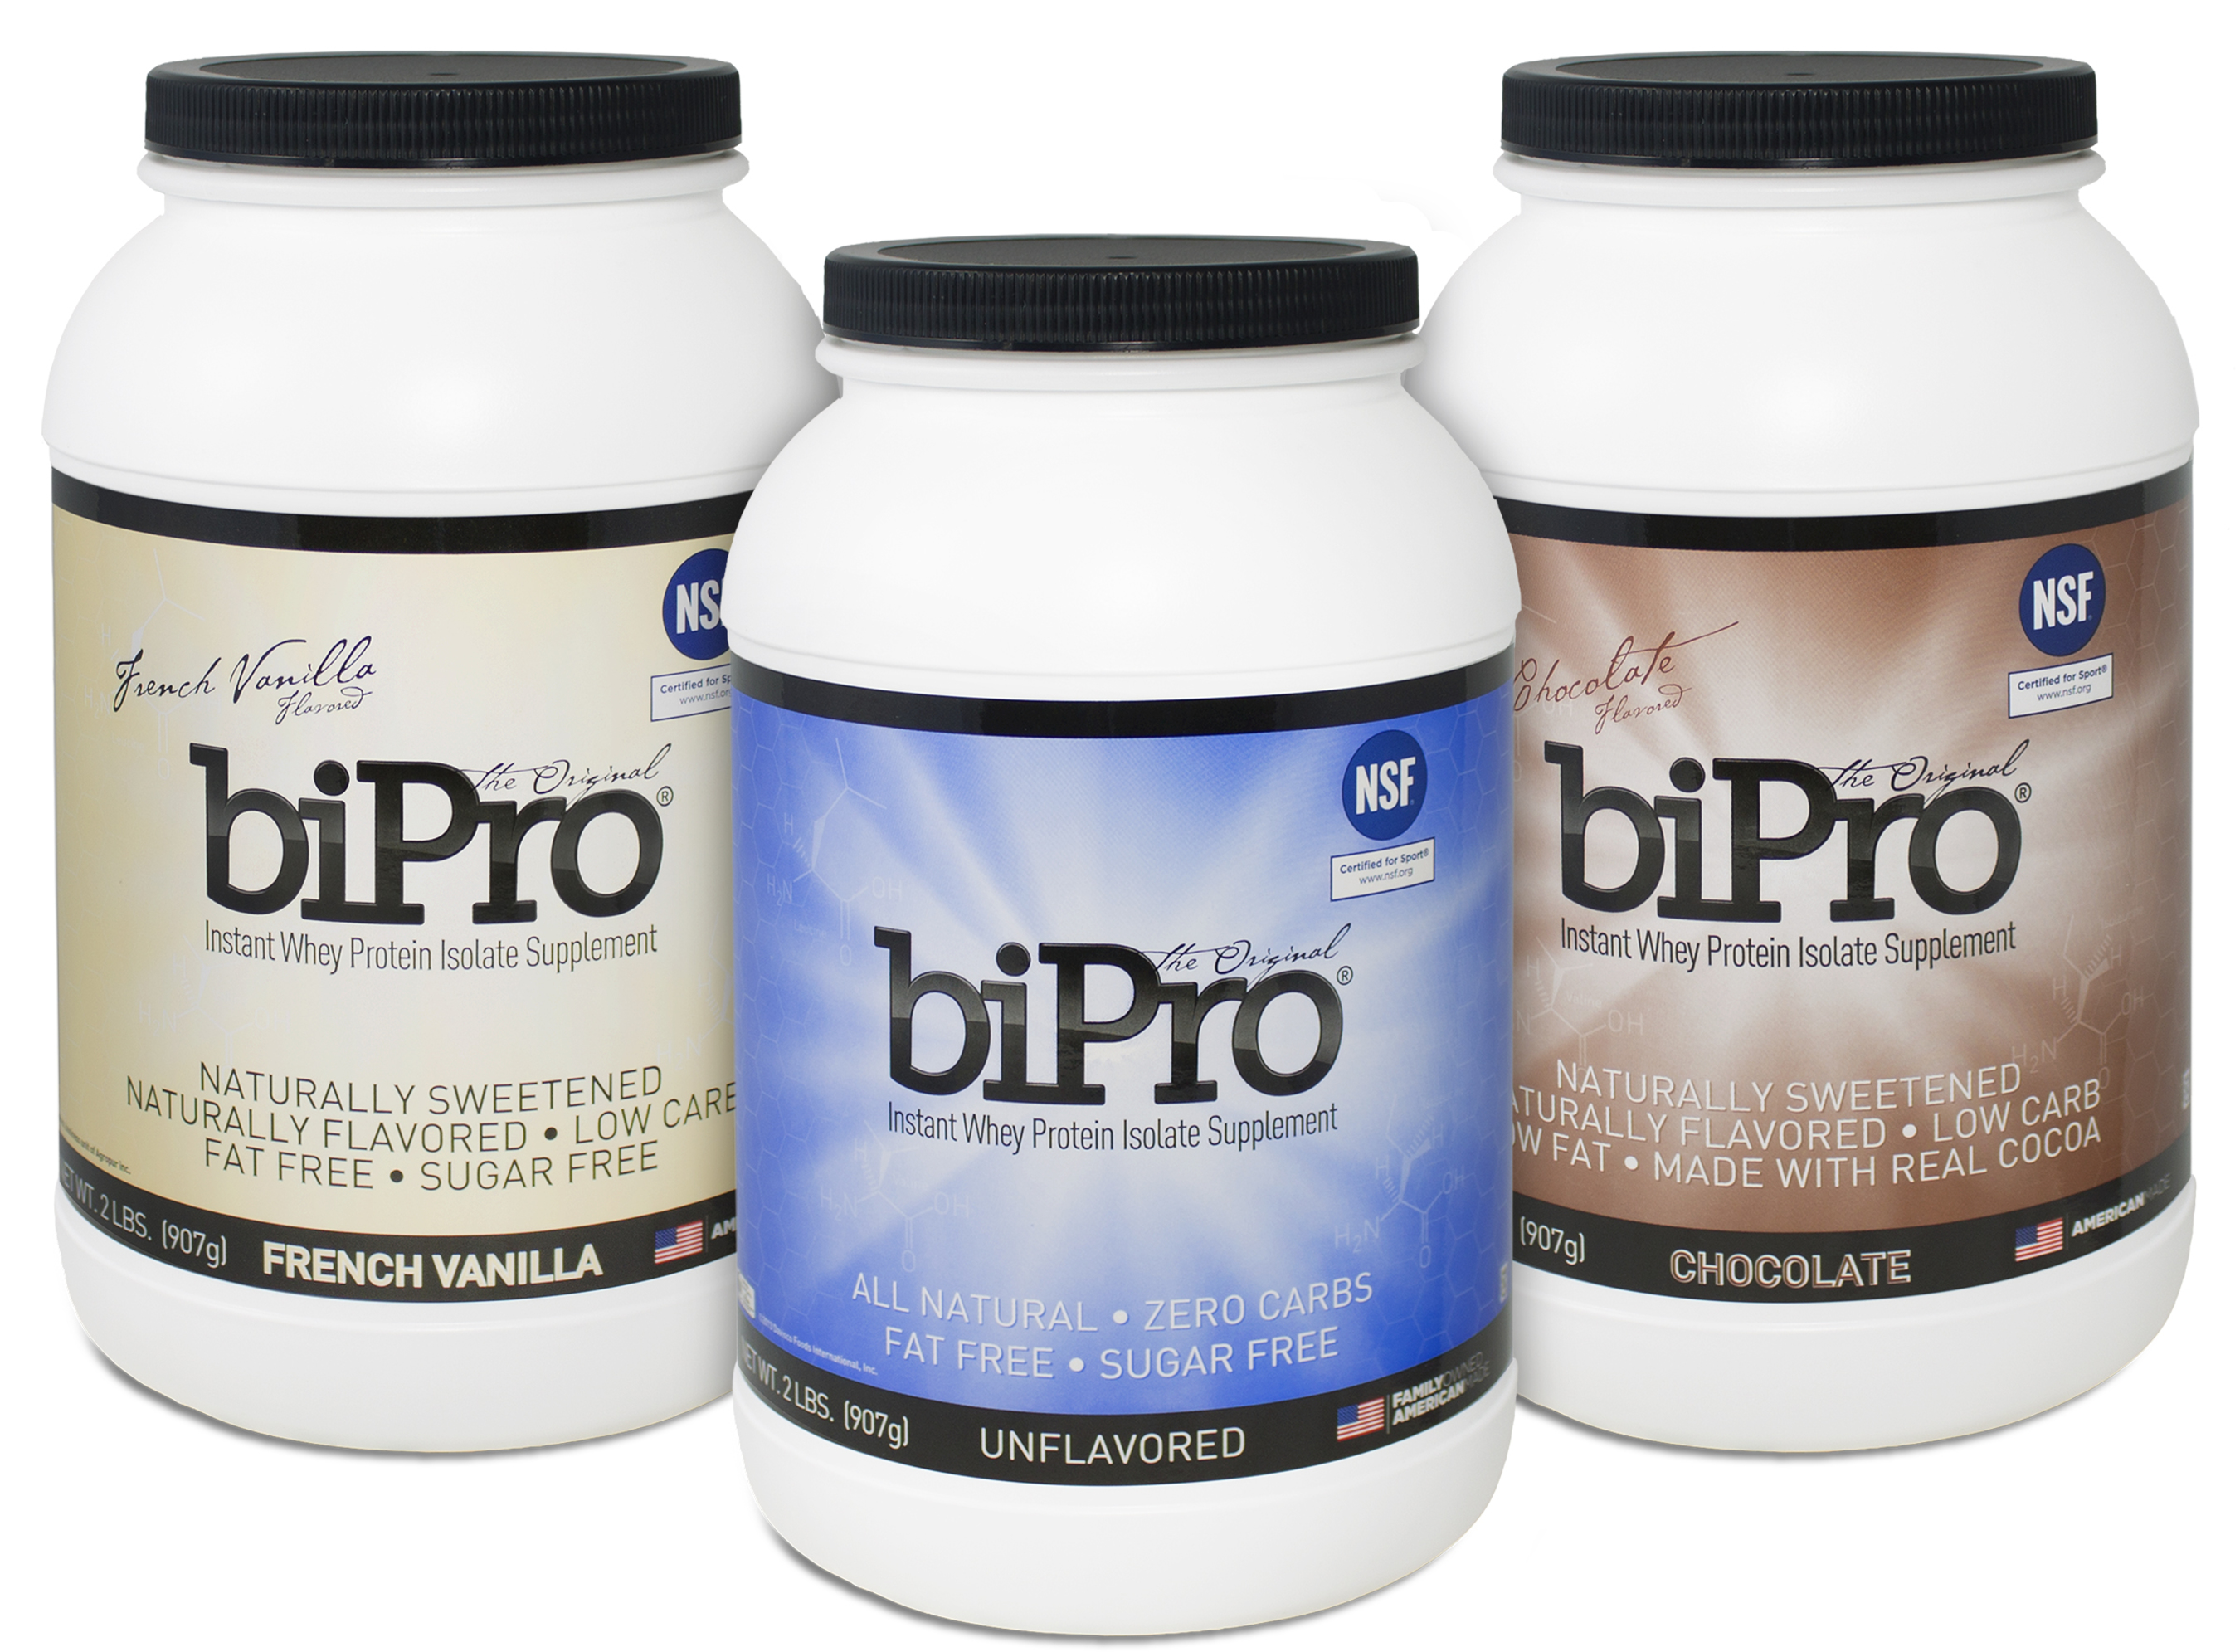 BiPro Whey Protein Isolate